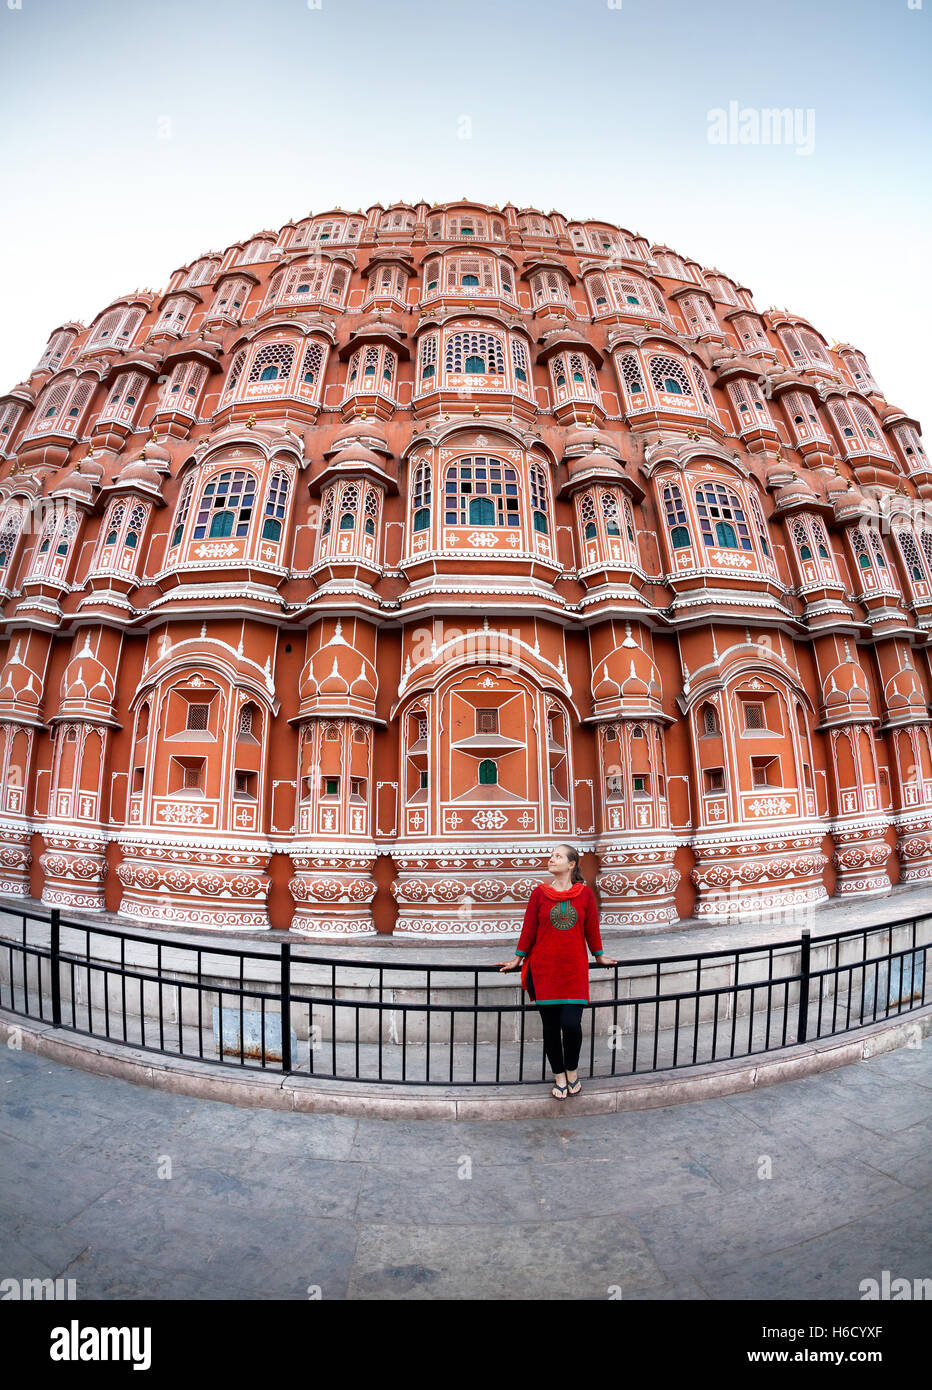 Woman in red dress with scarf standing near façade of Hawa Mahal, Rajasthan, India - Stock Image